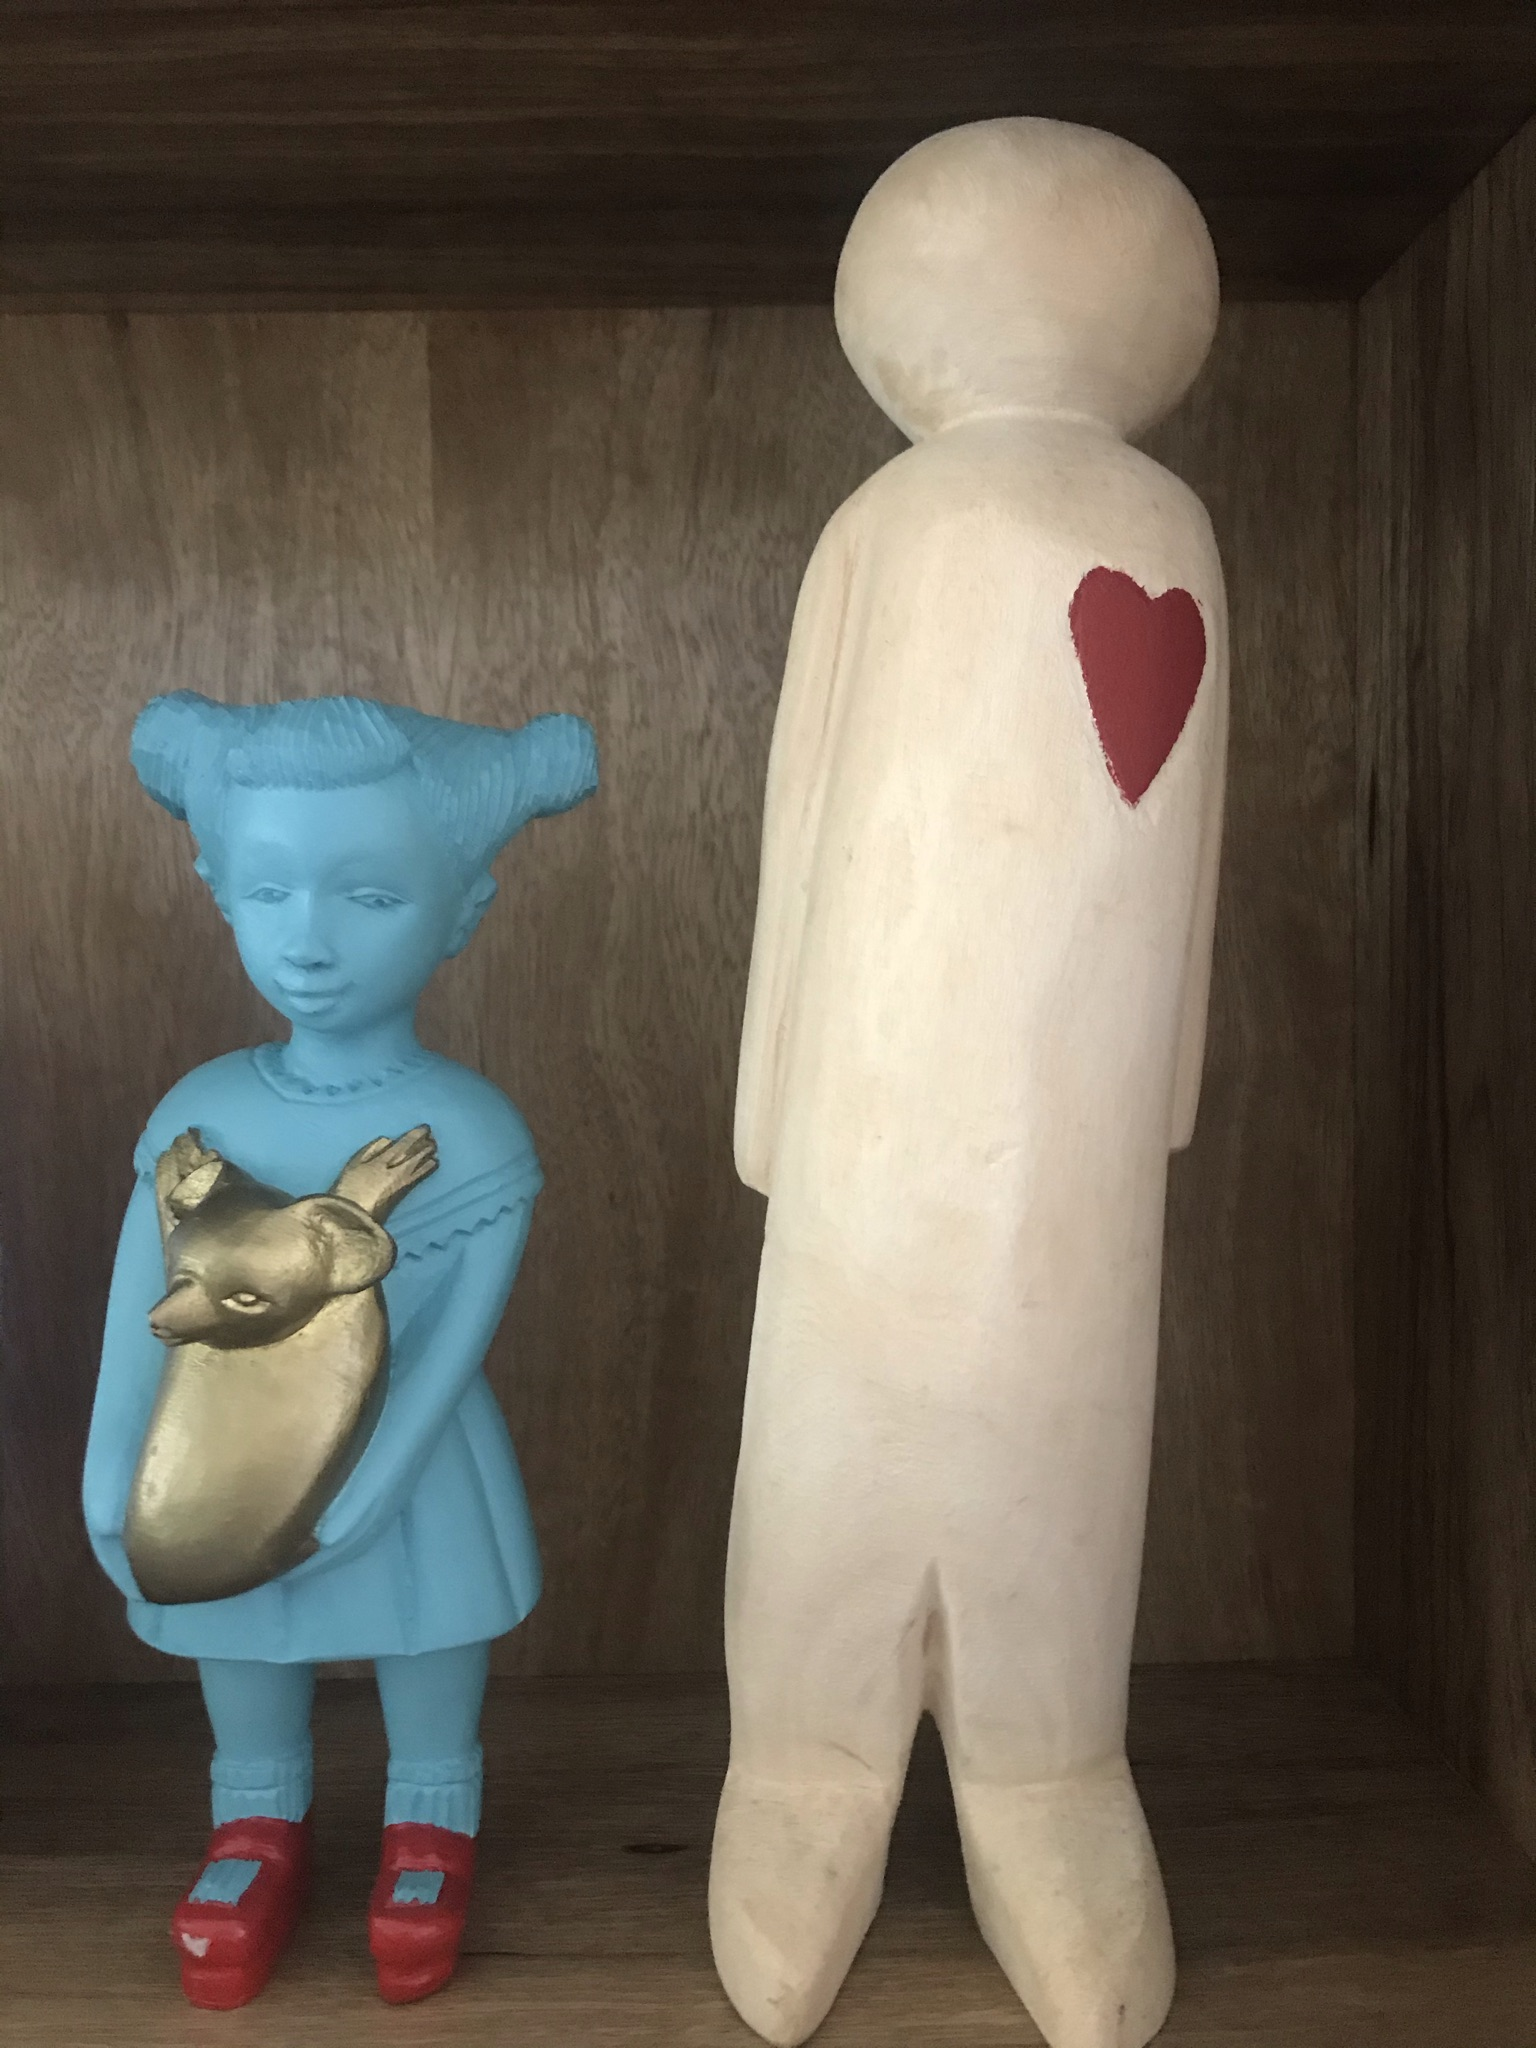 Koala Kate Doll made by Manoushka Kraal stands next to a large wooden figure of a man